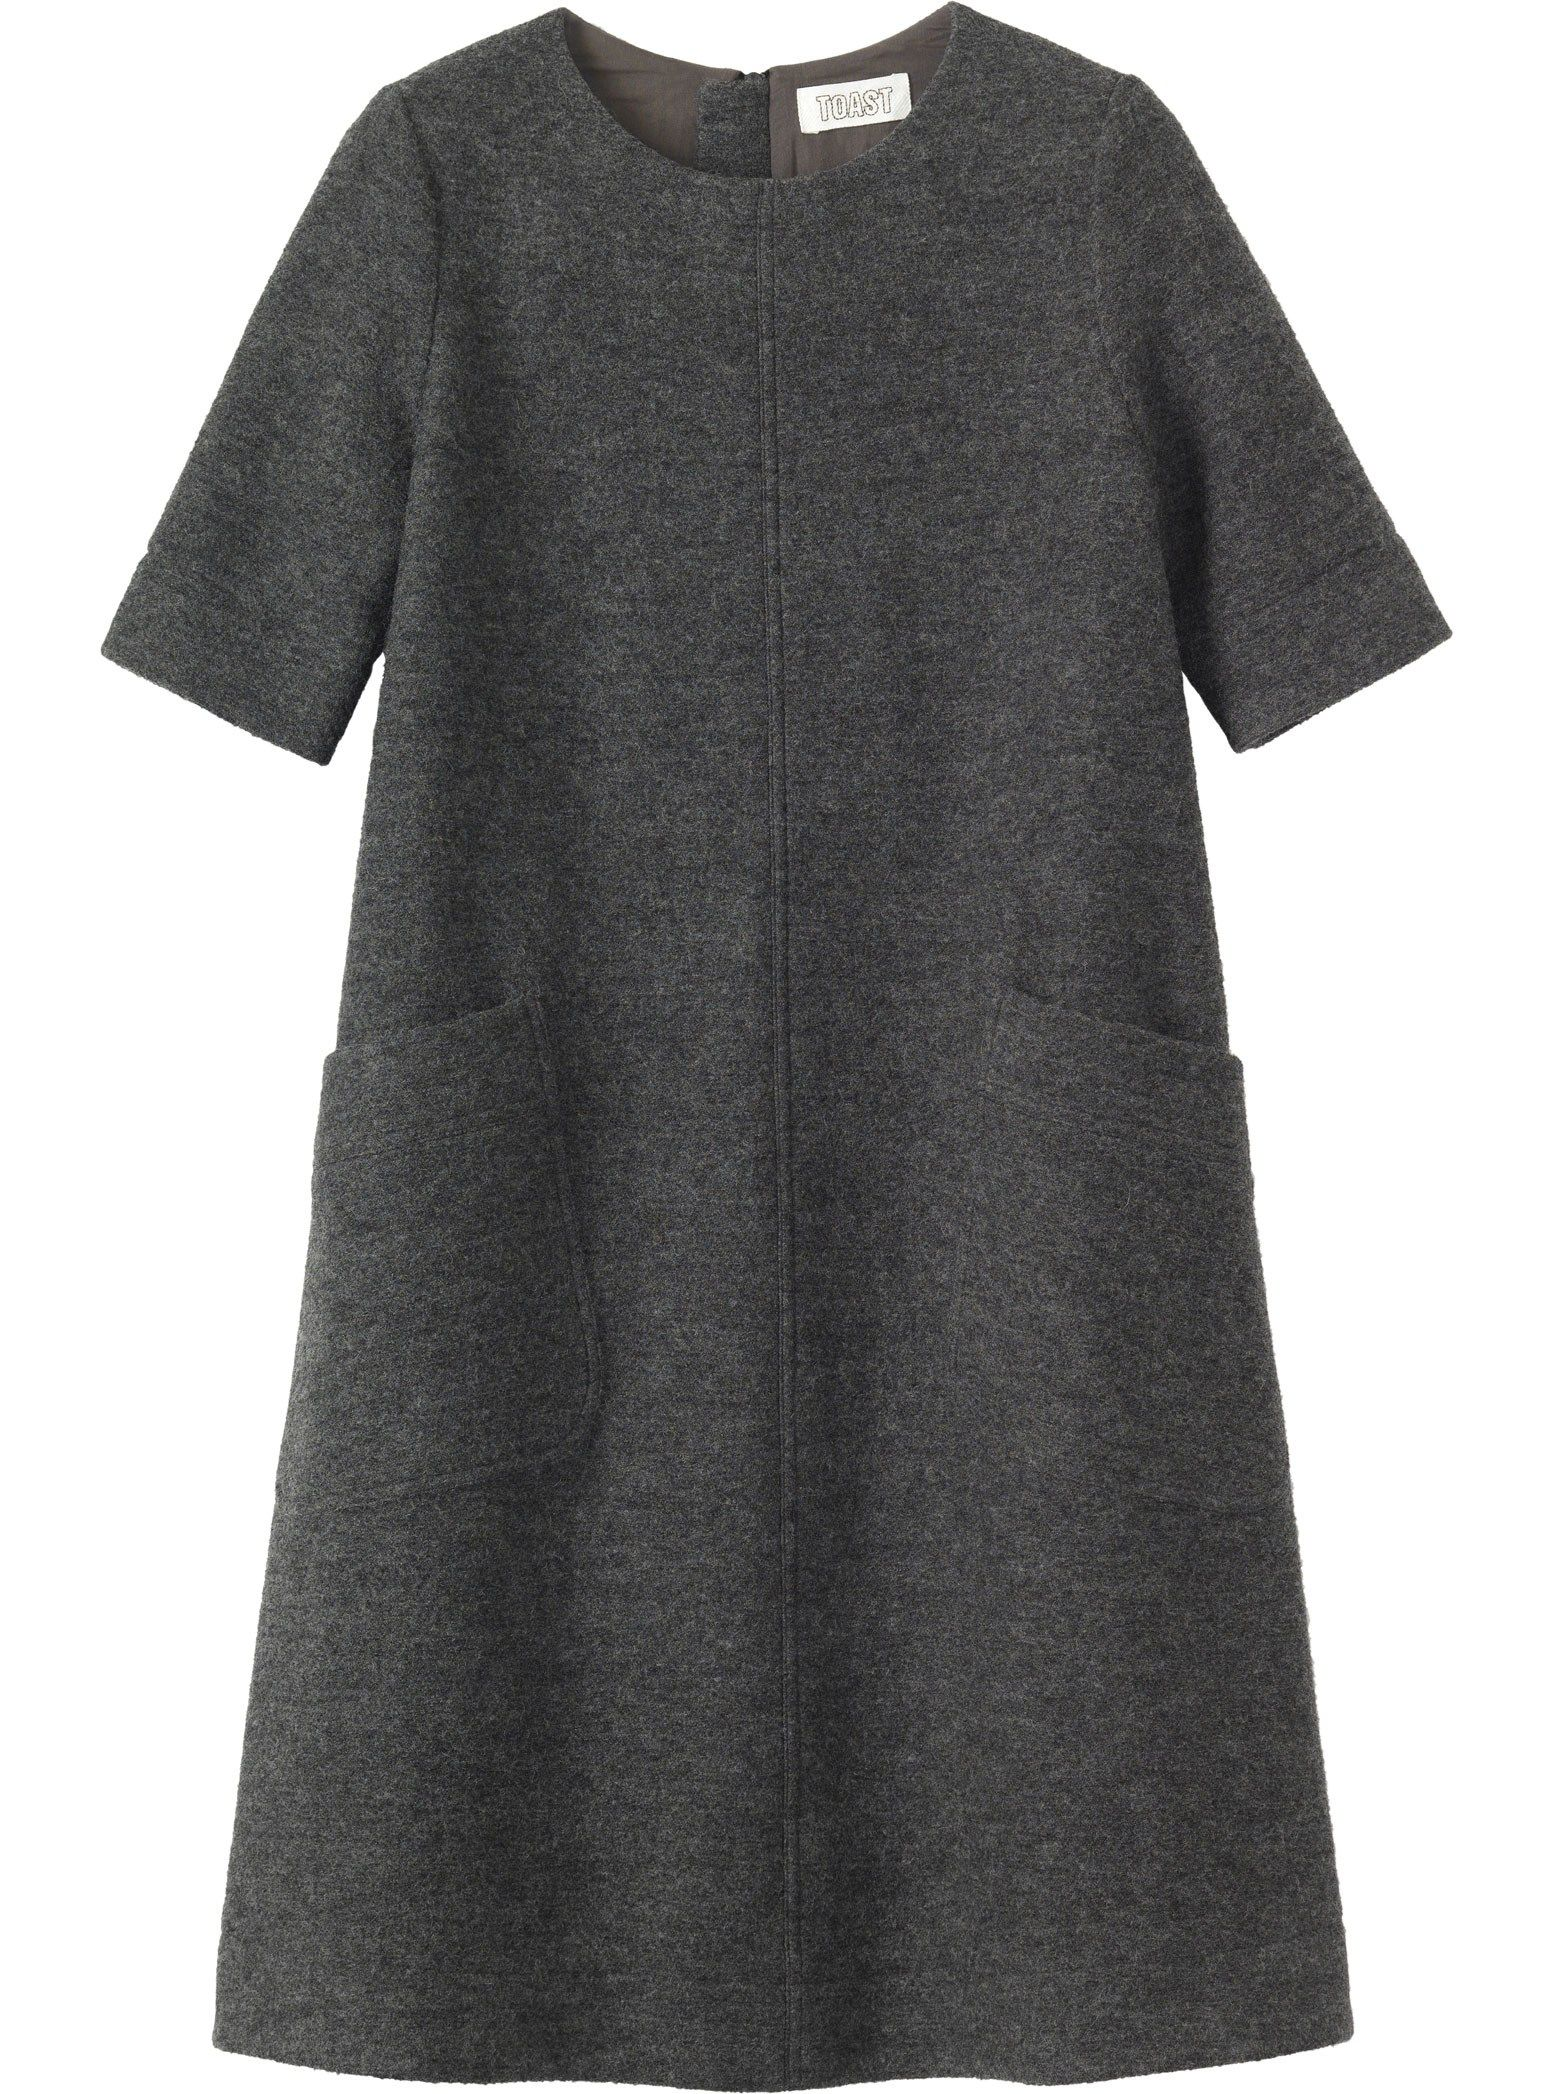 Aline dress with just above elbowlength sleeves and two slanted